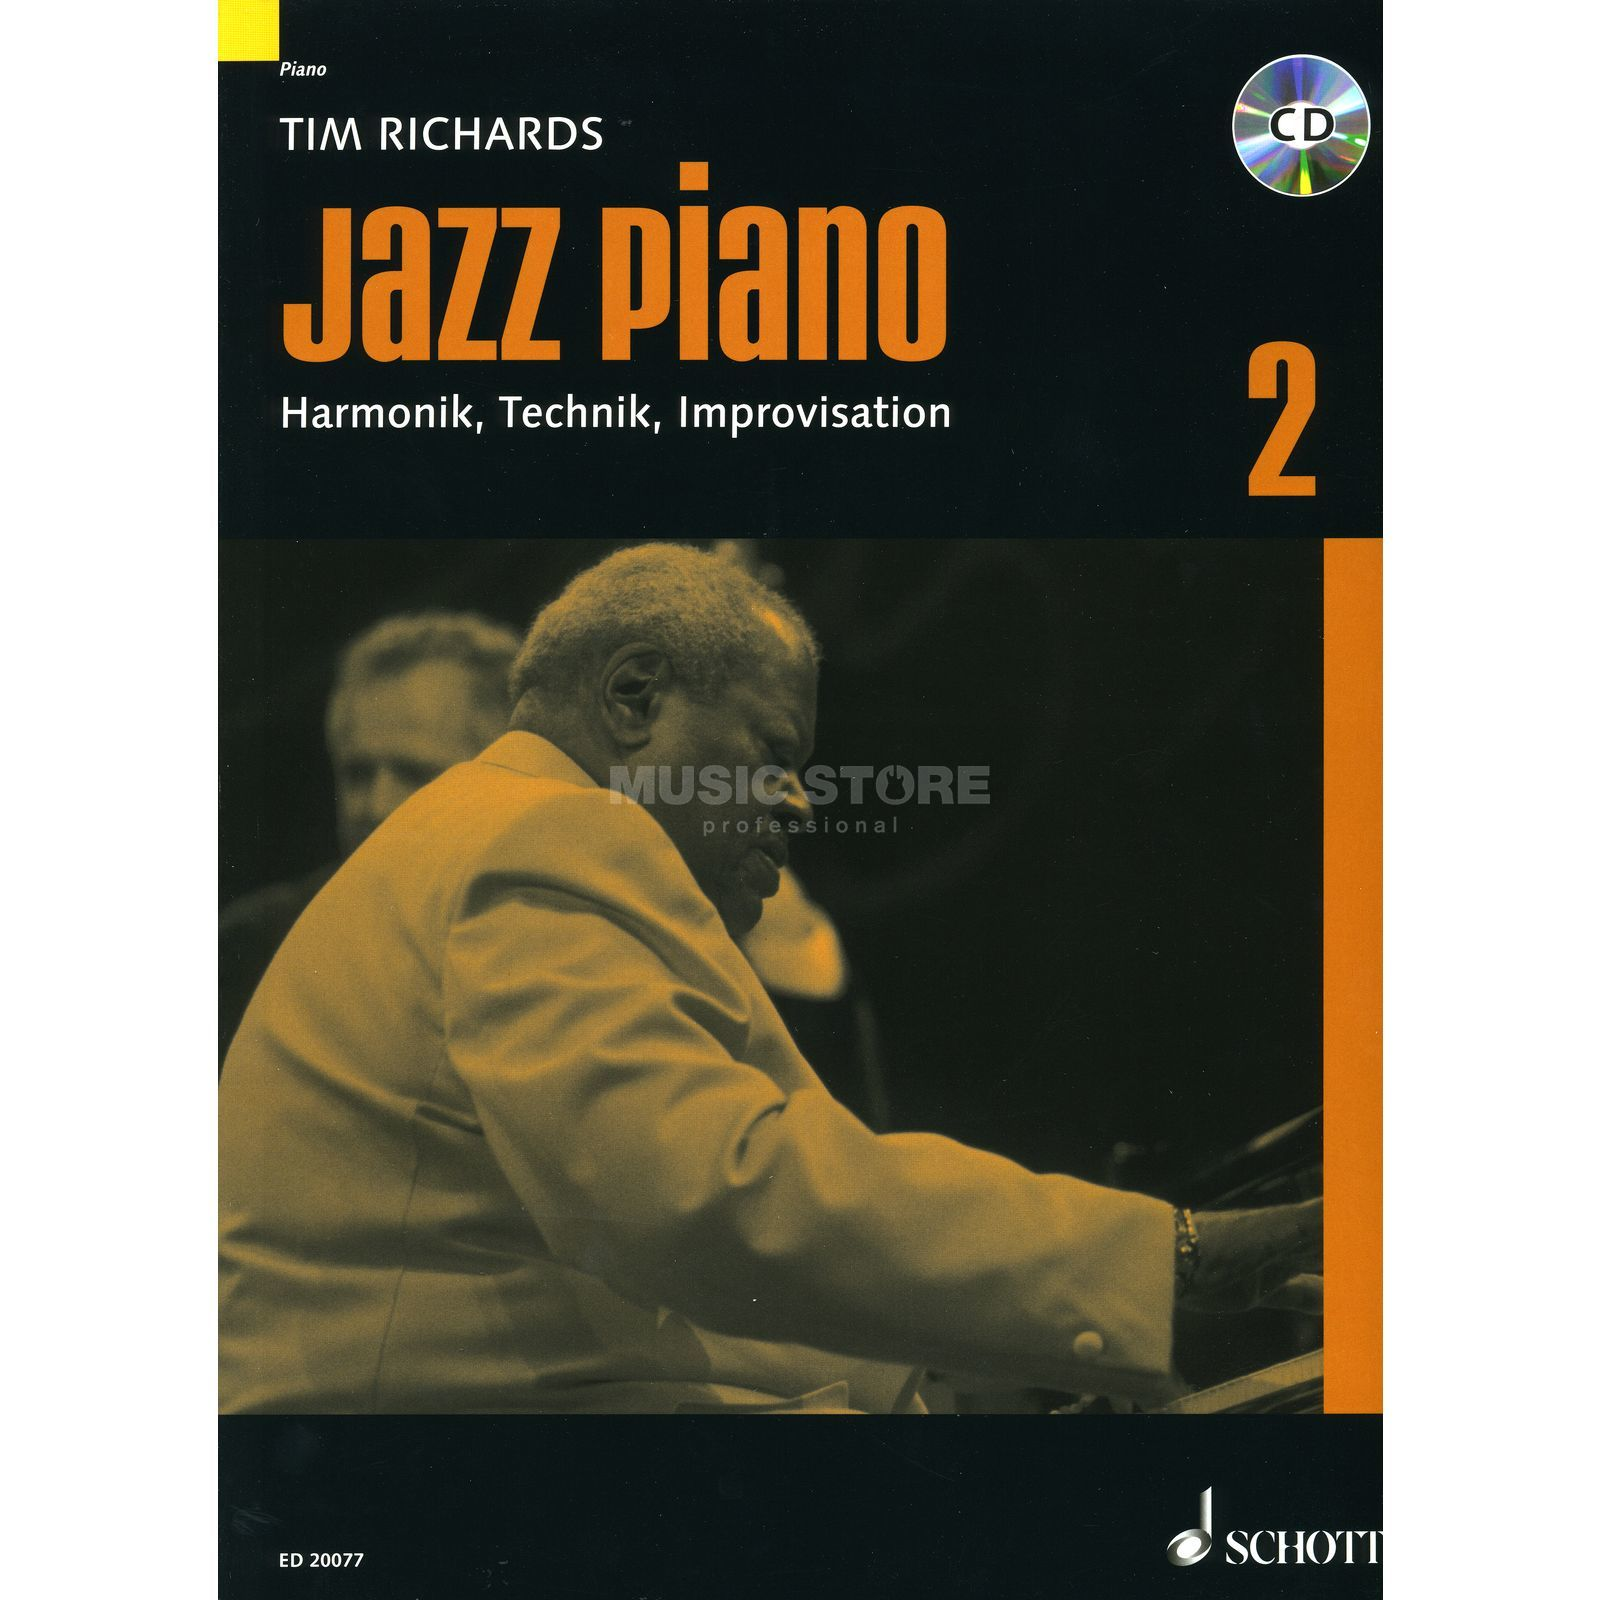 Schott Music Jazz Piano 2 Tim Richards, Lehrbuch mit CD Image du produit